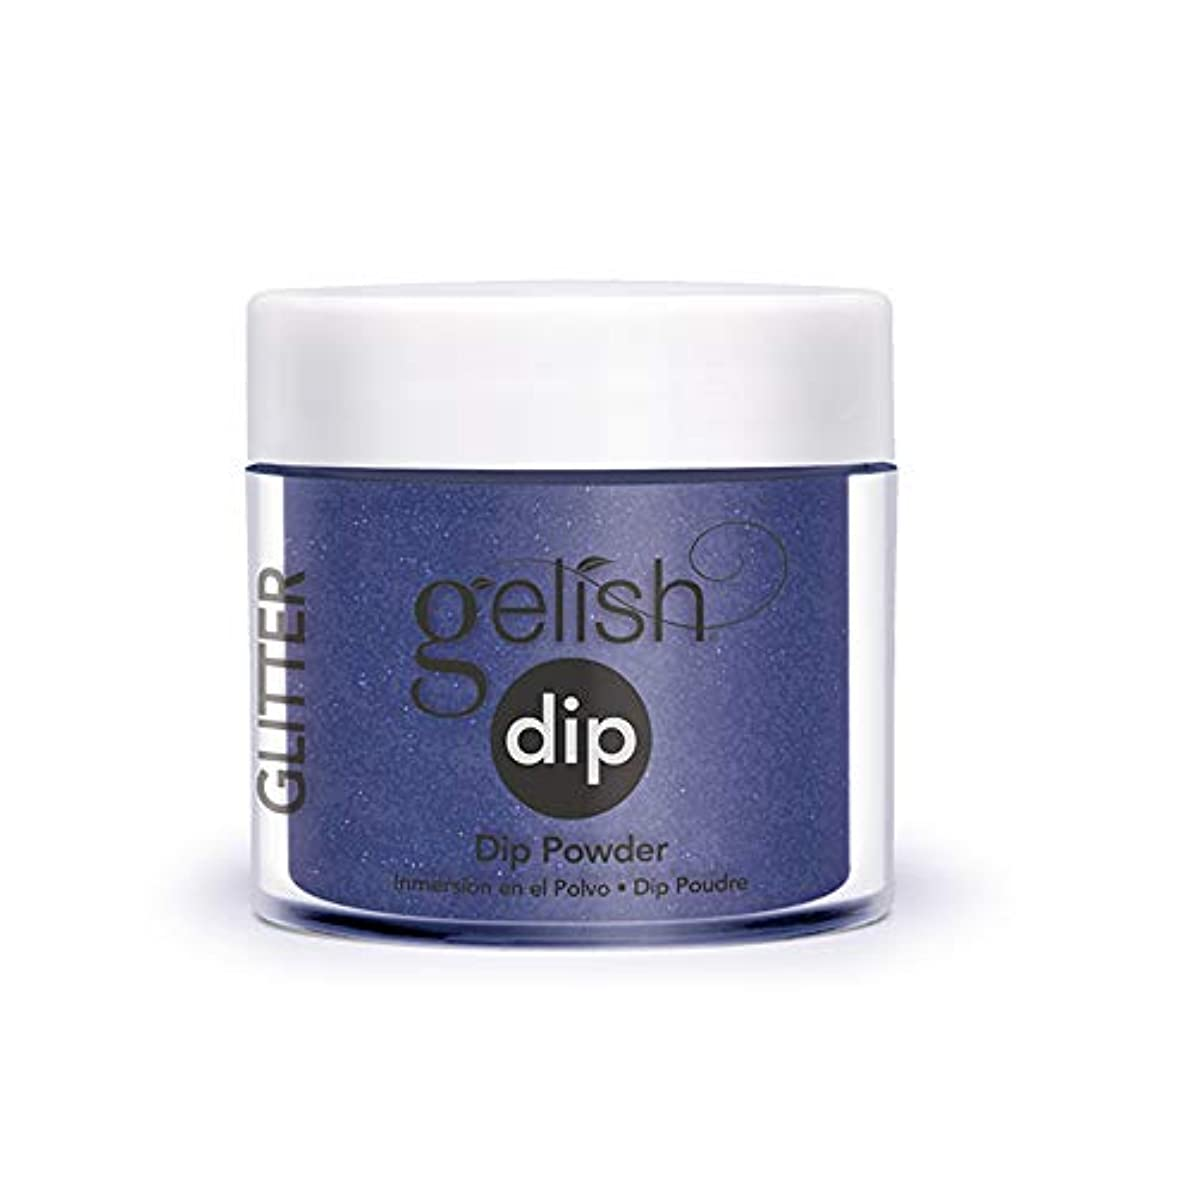 Harmony Gelish - Acrylic Dip Powder - Under the Stars - 23g / 0.8oz